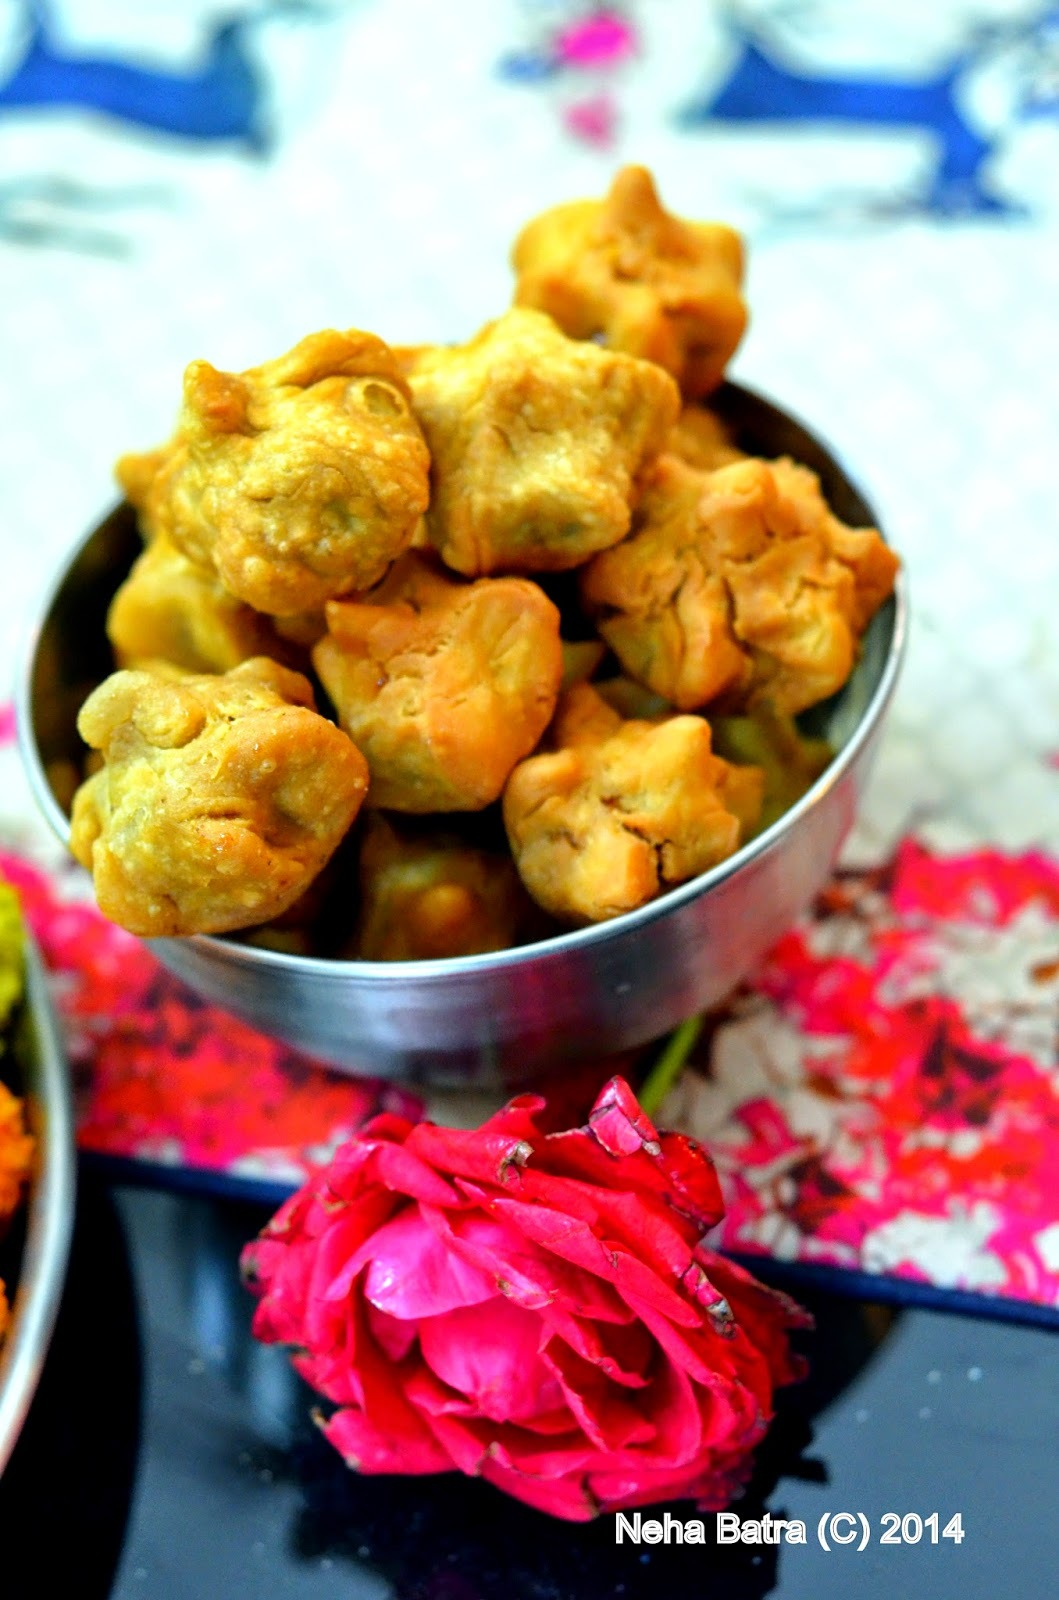 Fried Modak (Fried SWEET Dumplings)